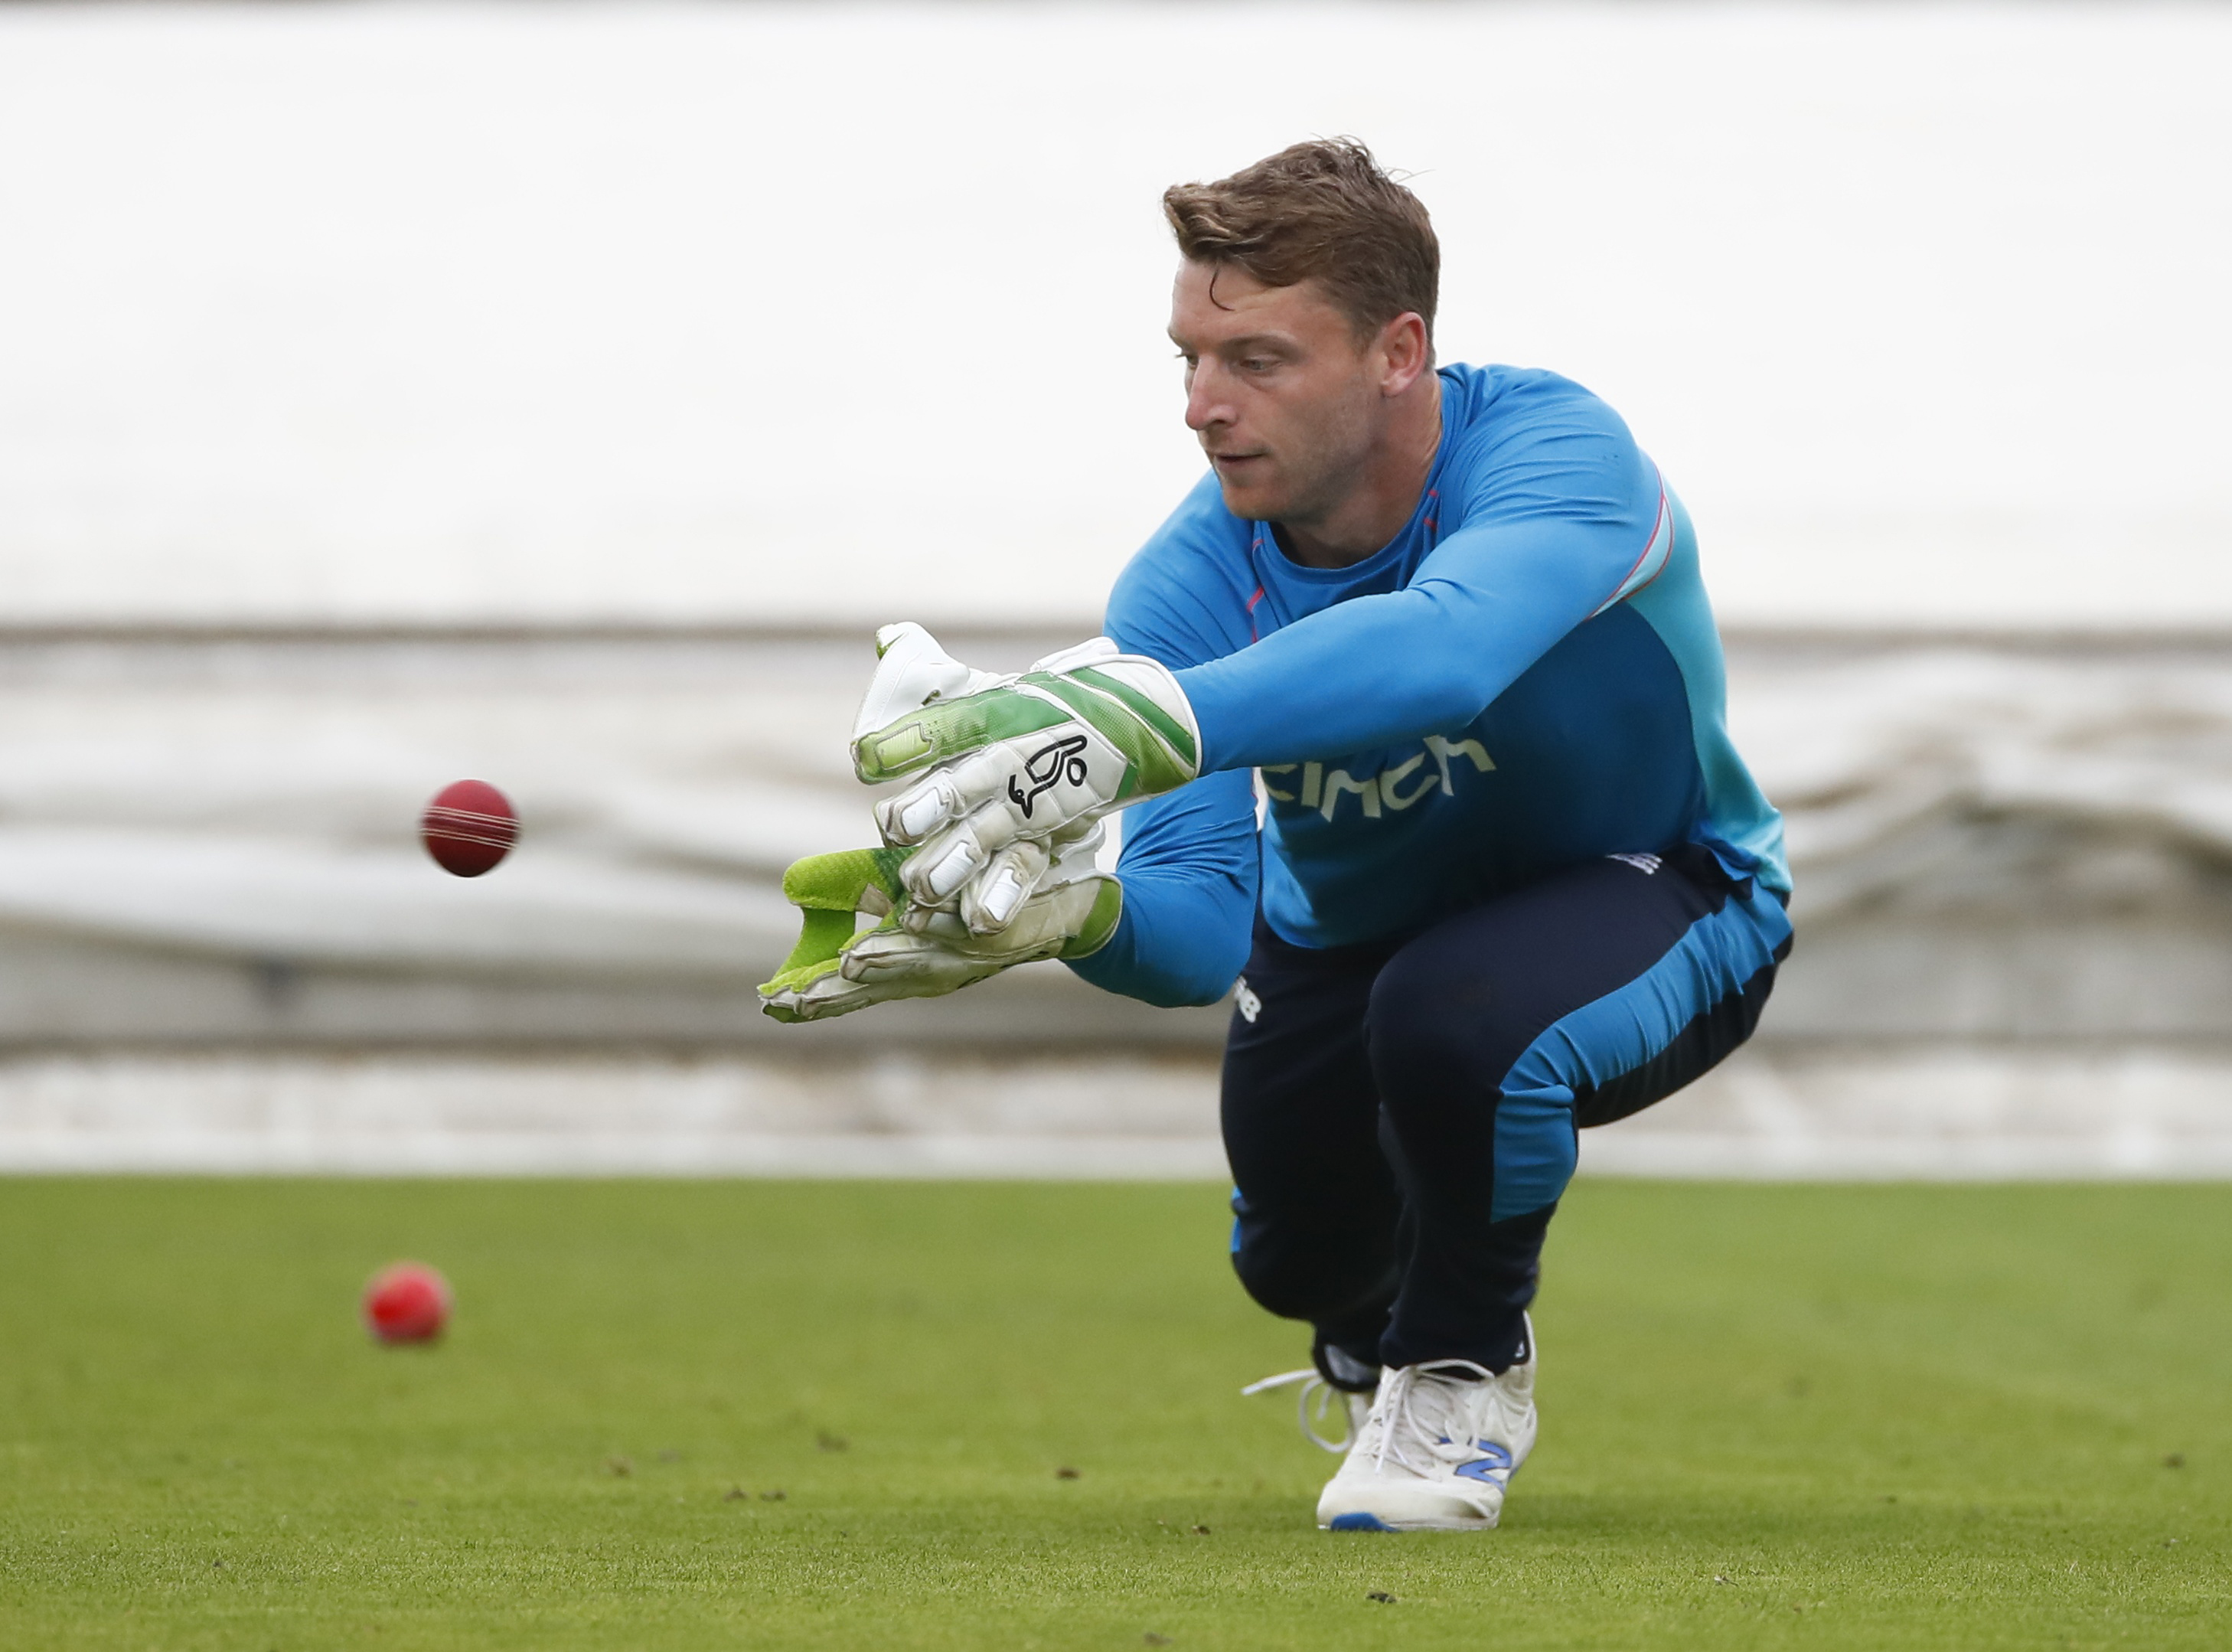 Cricket - England Nets - Emirates Old Trafford, Manchester, Britain- September 9, 2021 England's Jos Buttler during nets Action Images via Reuters/Jason Cairnduff